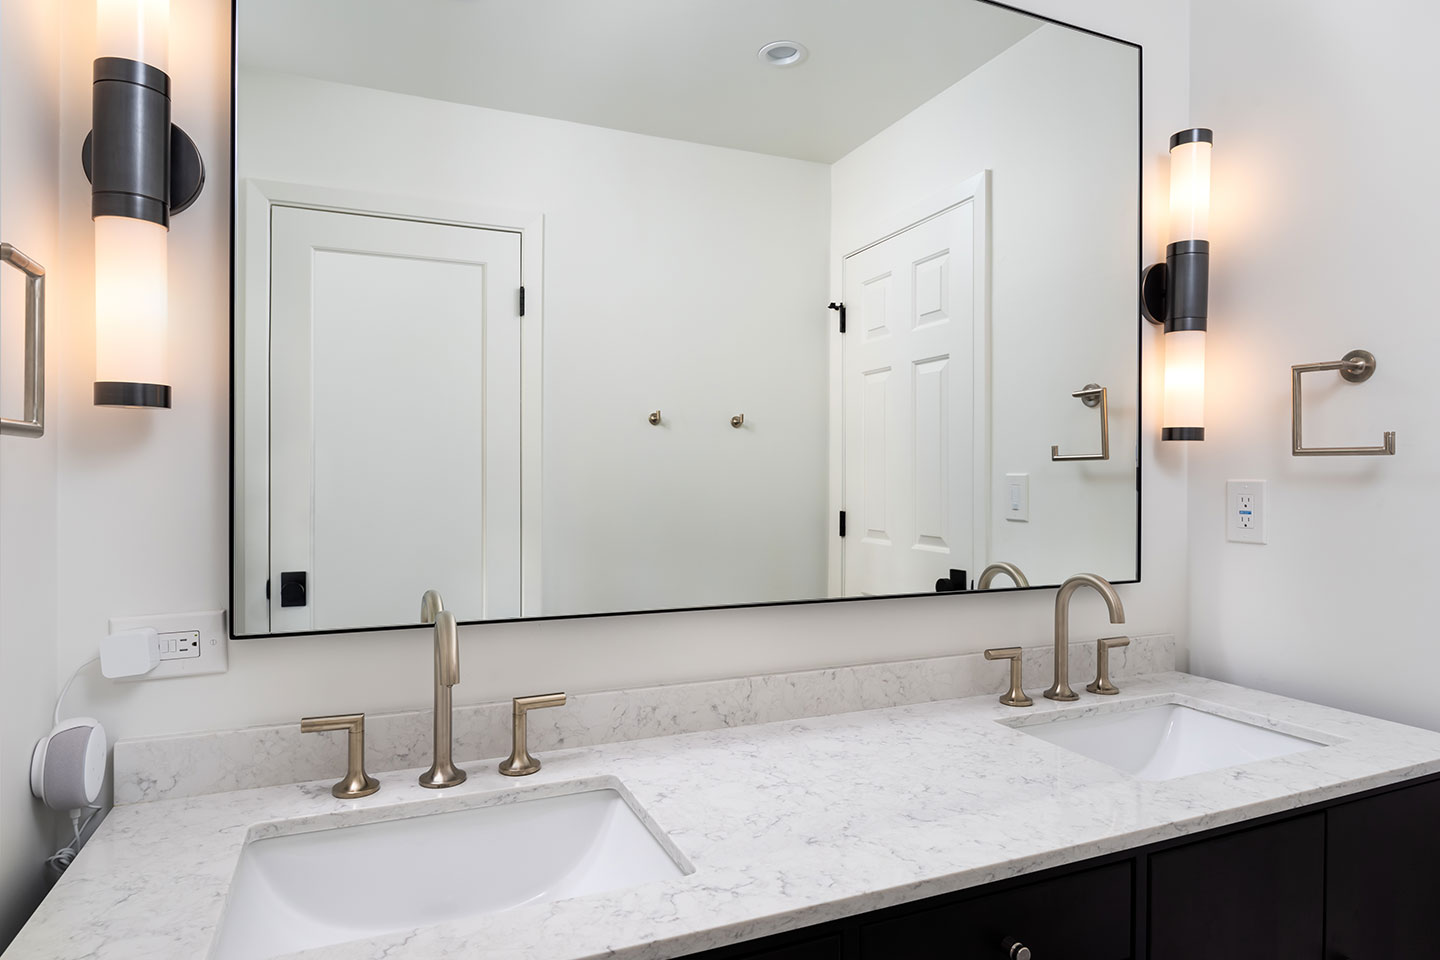 6 ft wide mirrors with modern light fixtures